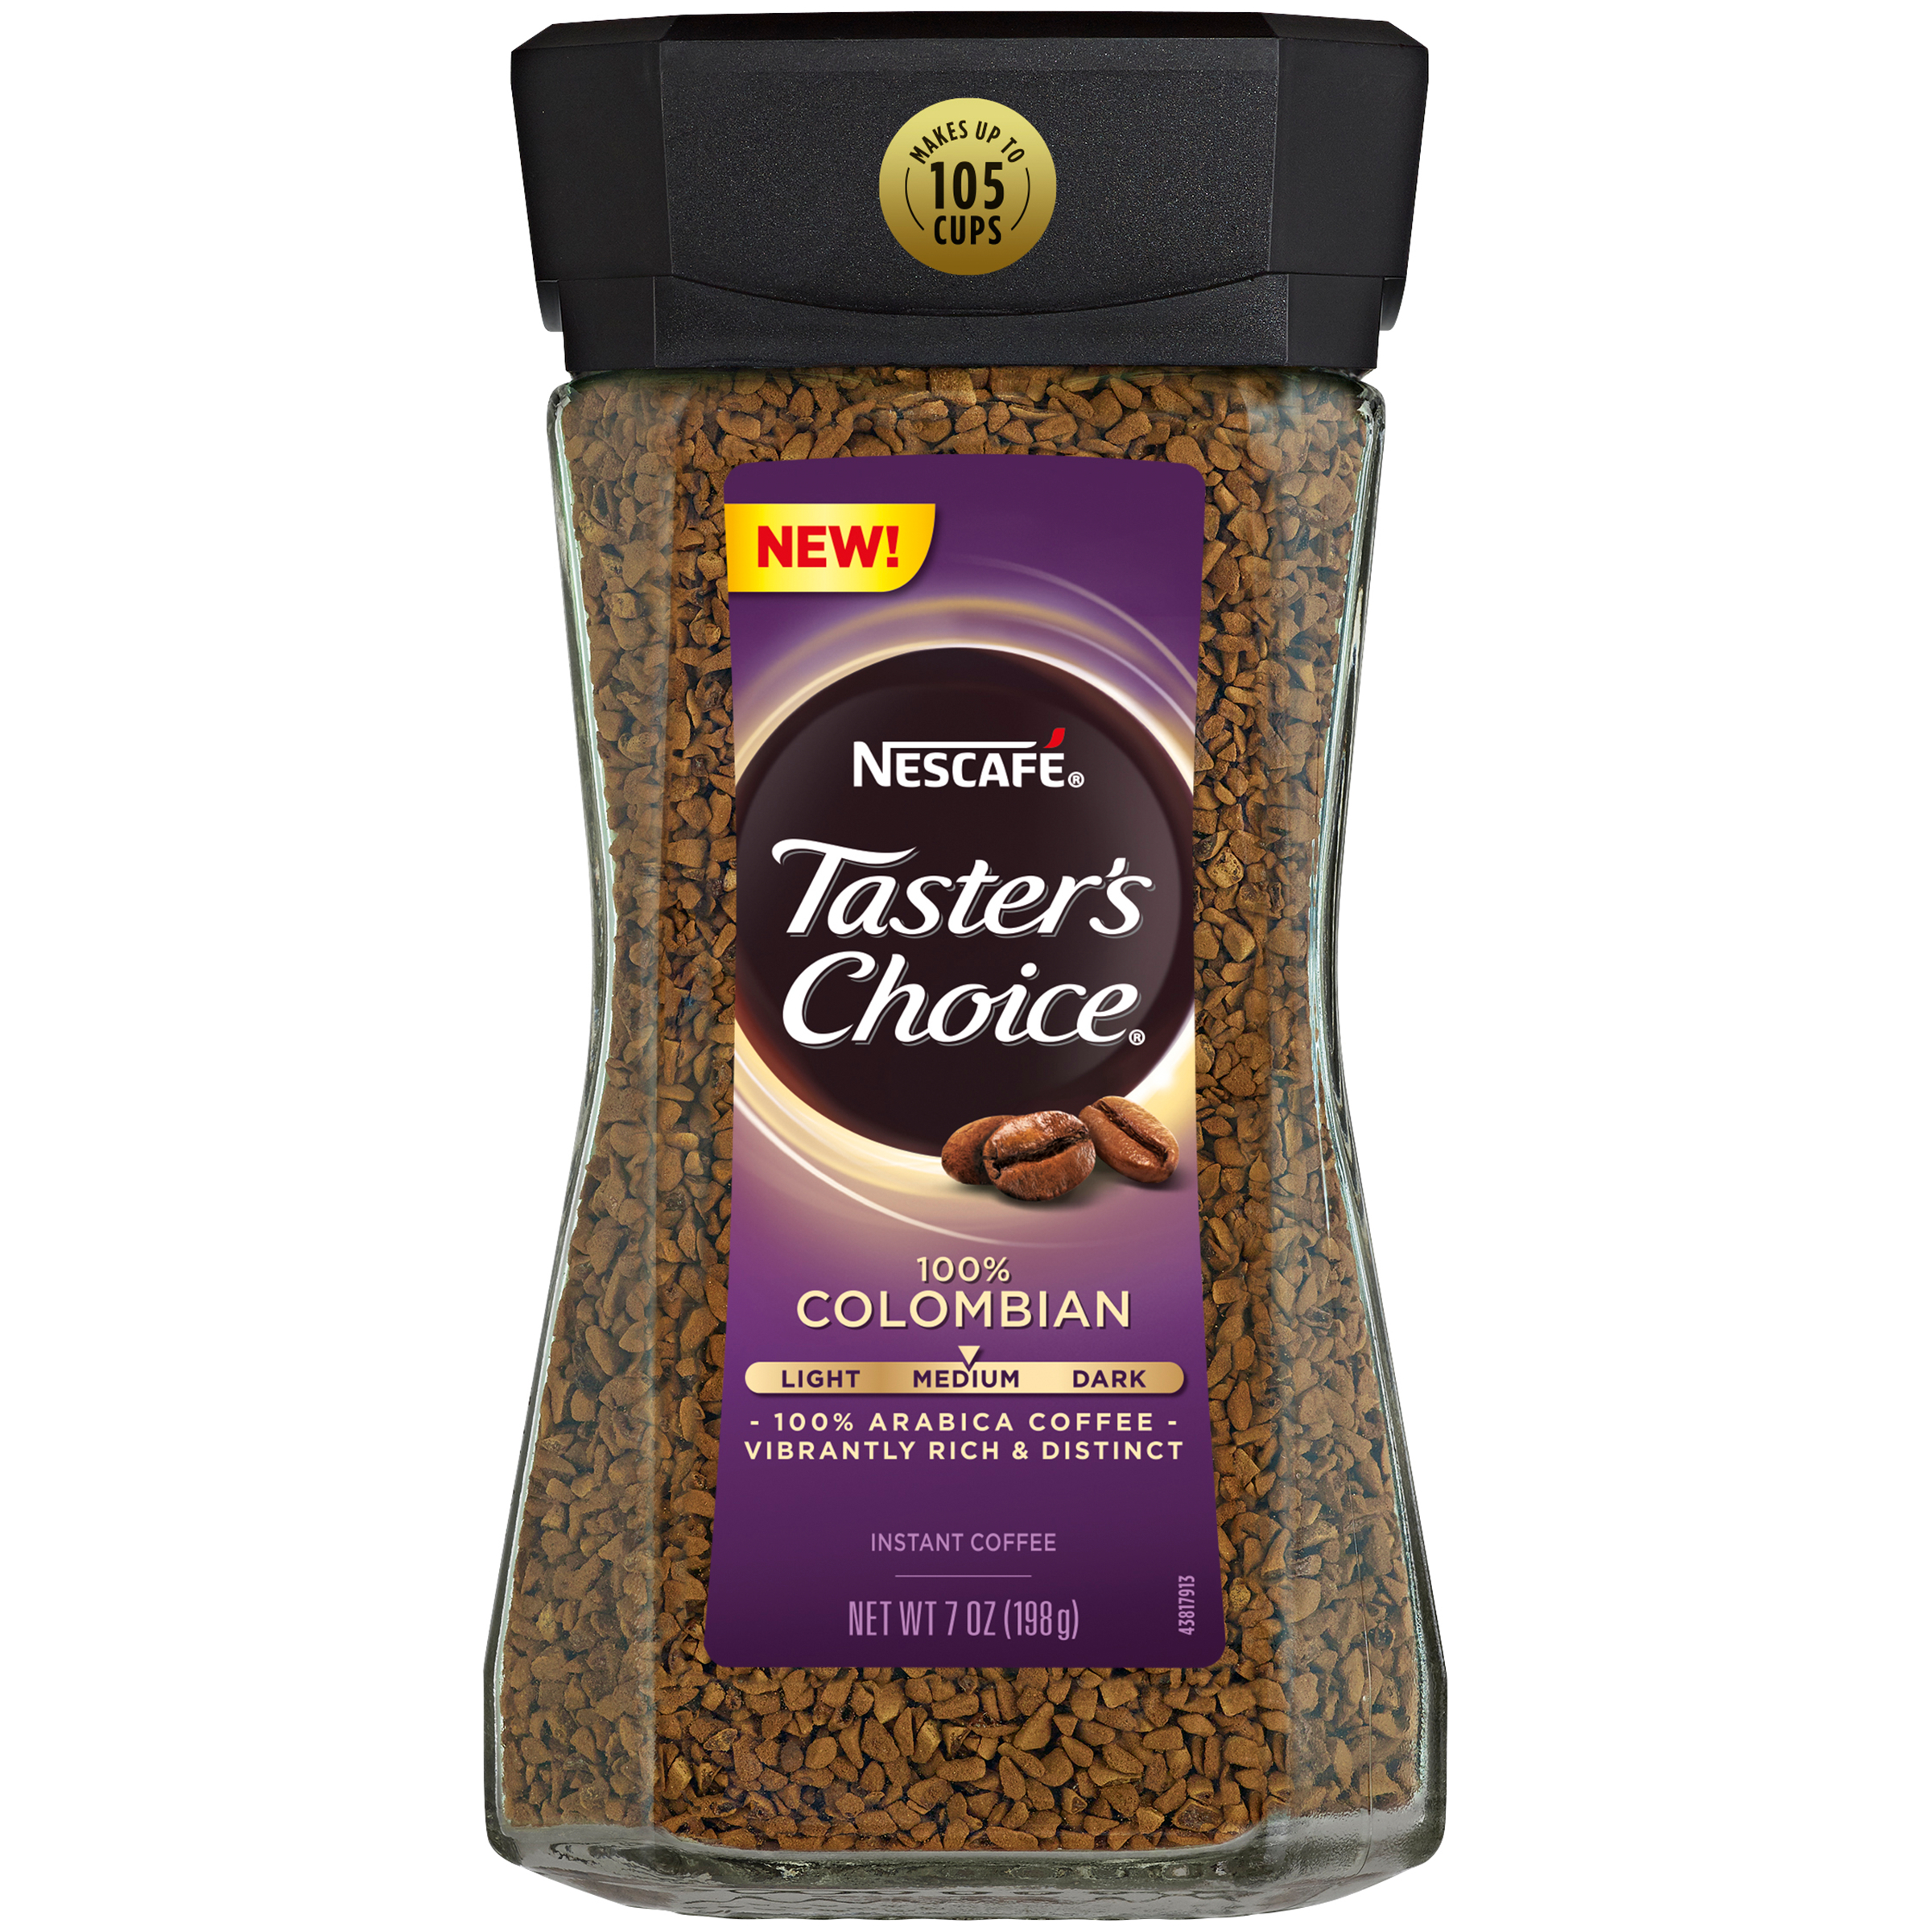 NESCAFE Taster's Choice 100% Colombian Instant Coffee 7 oz. Jar